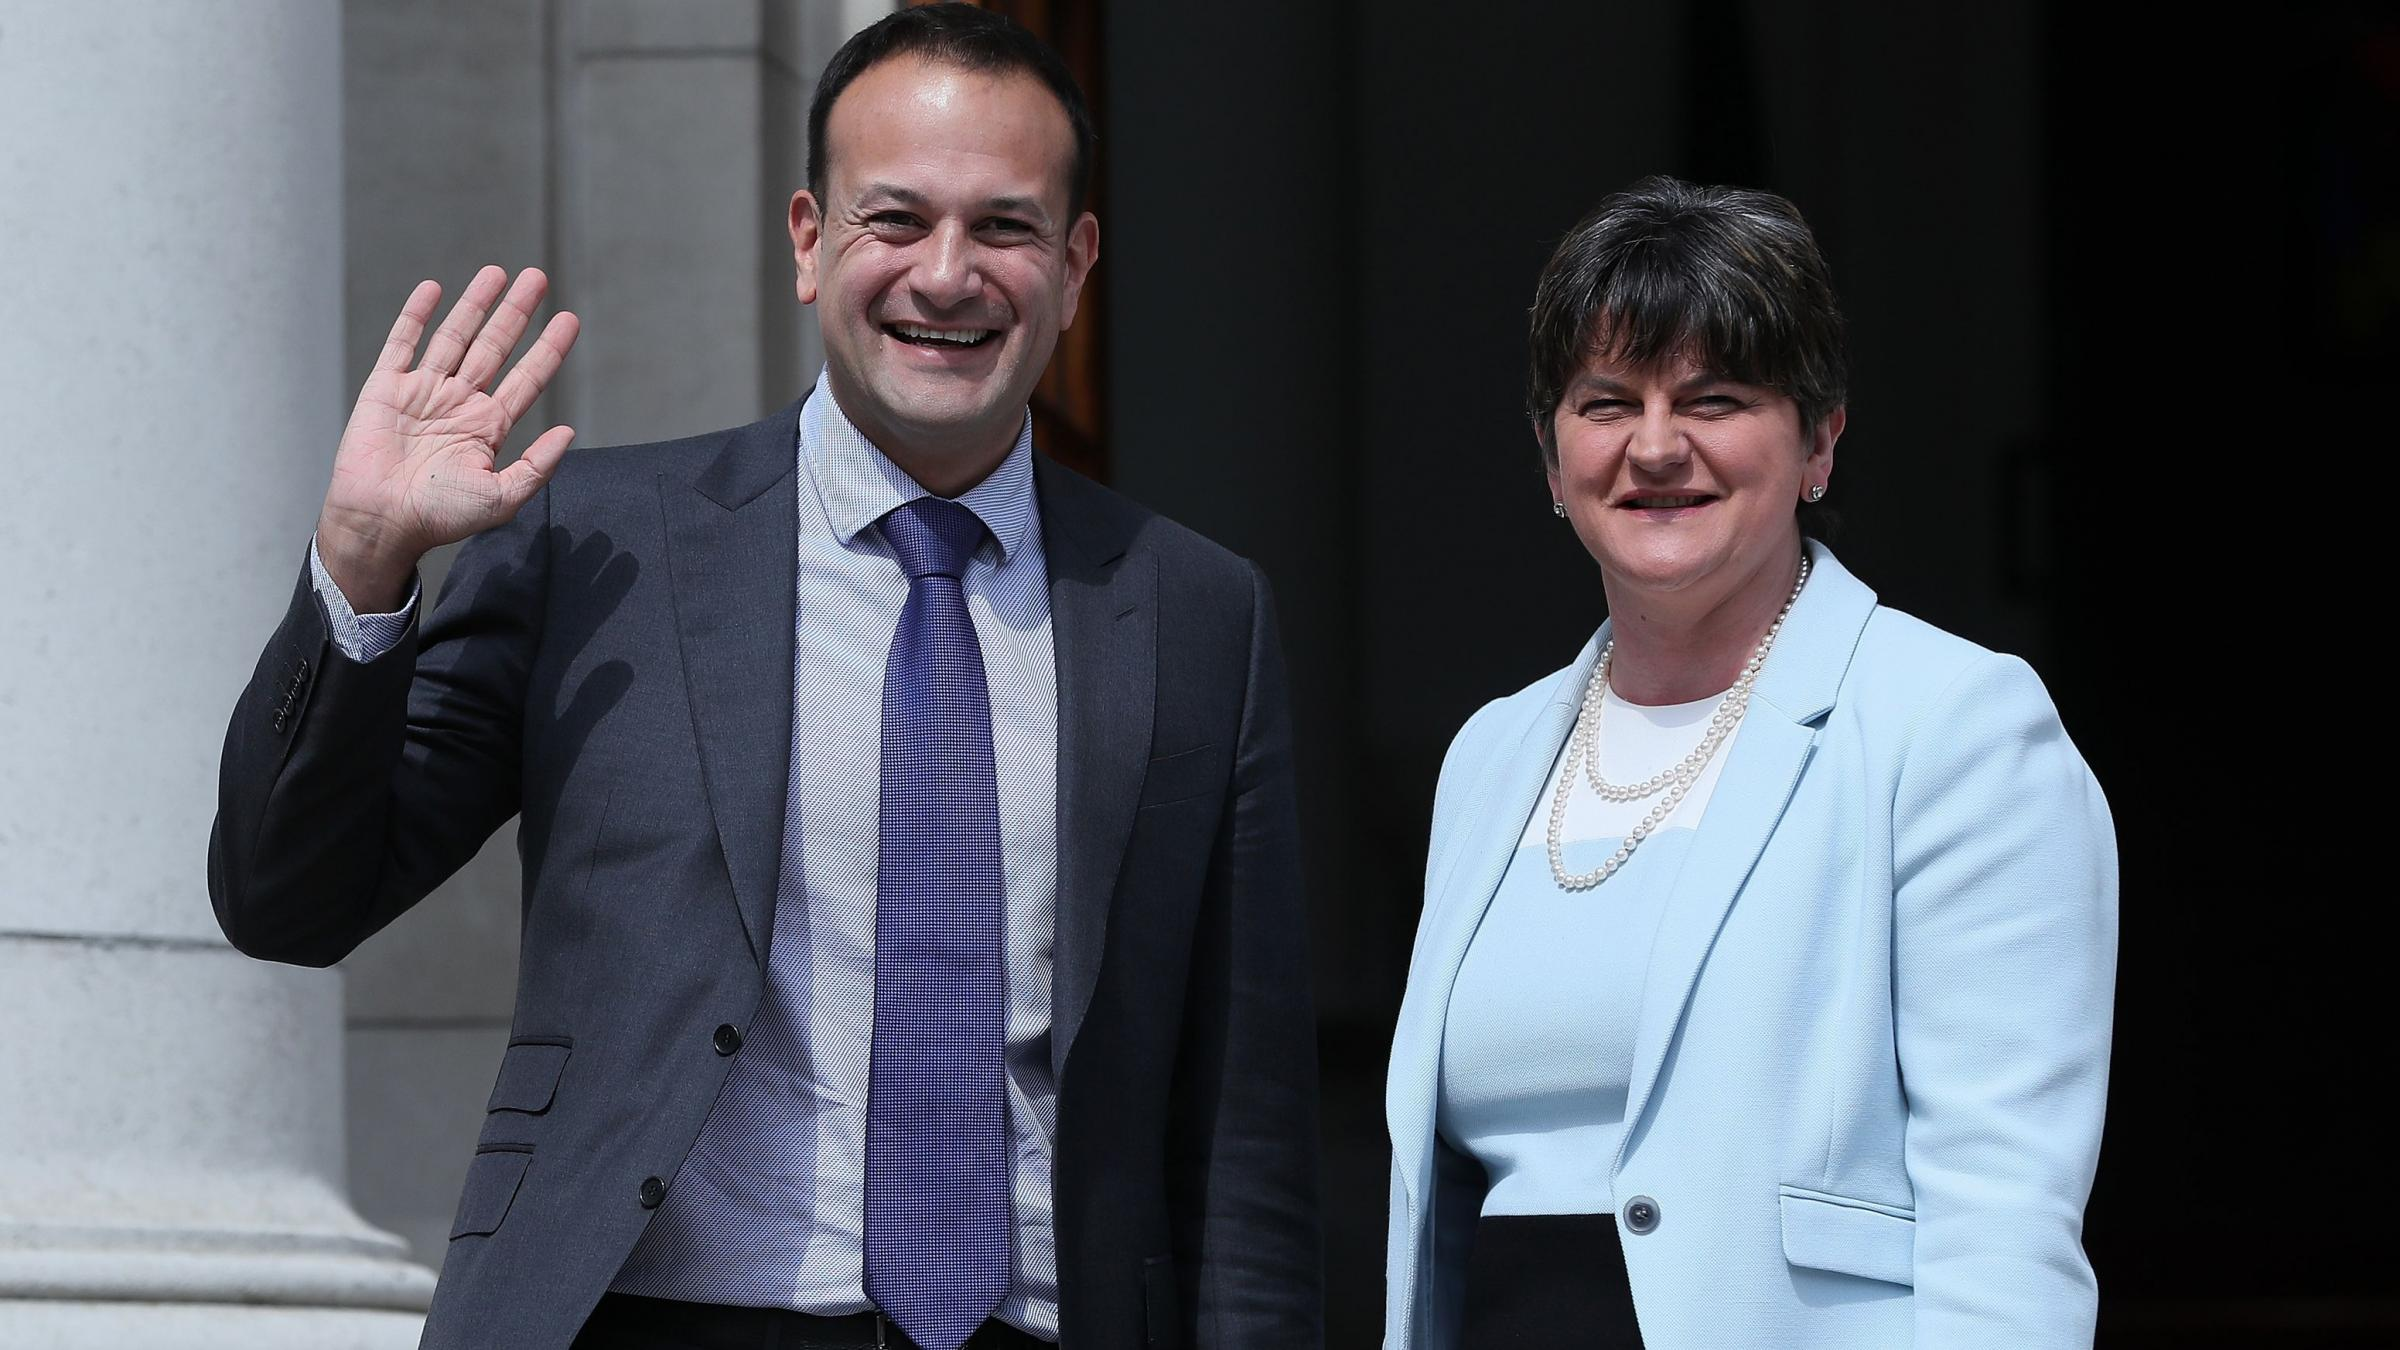 DUP hoping to conclude deal with May as soon as possible